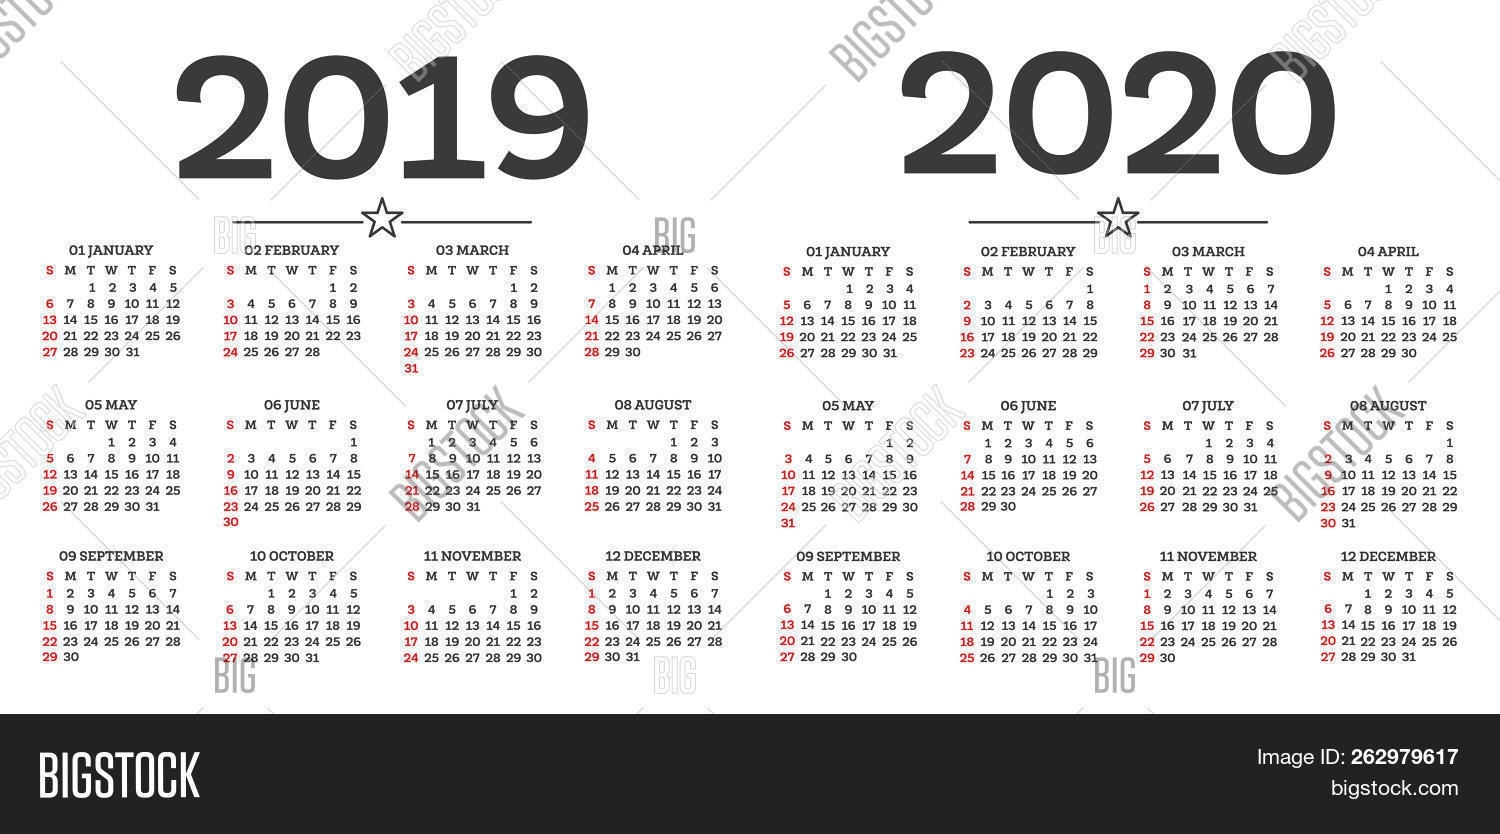 Calendar 2019 2020 Image & Photo (Free Trial) | Bigstock pertaining to Calendar 2019 2020 With Week Number